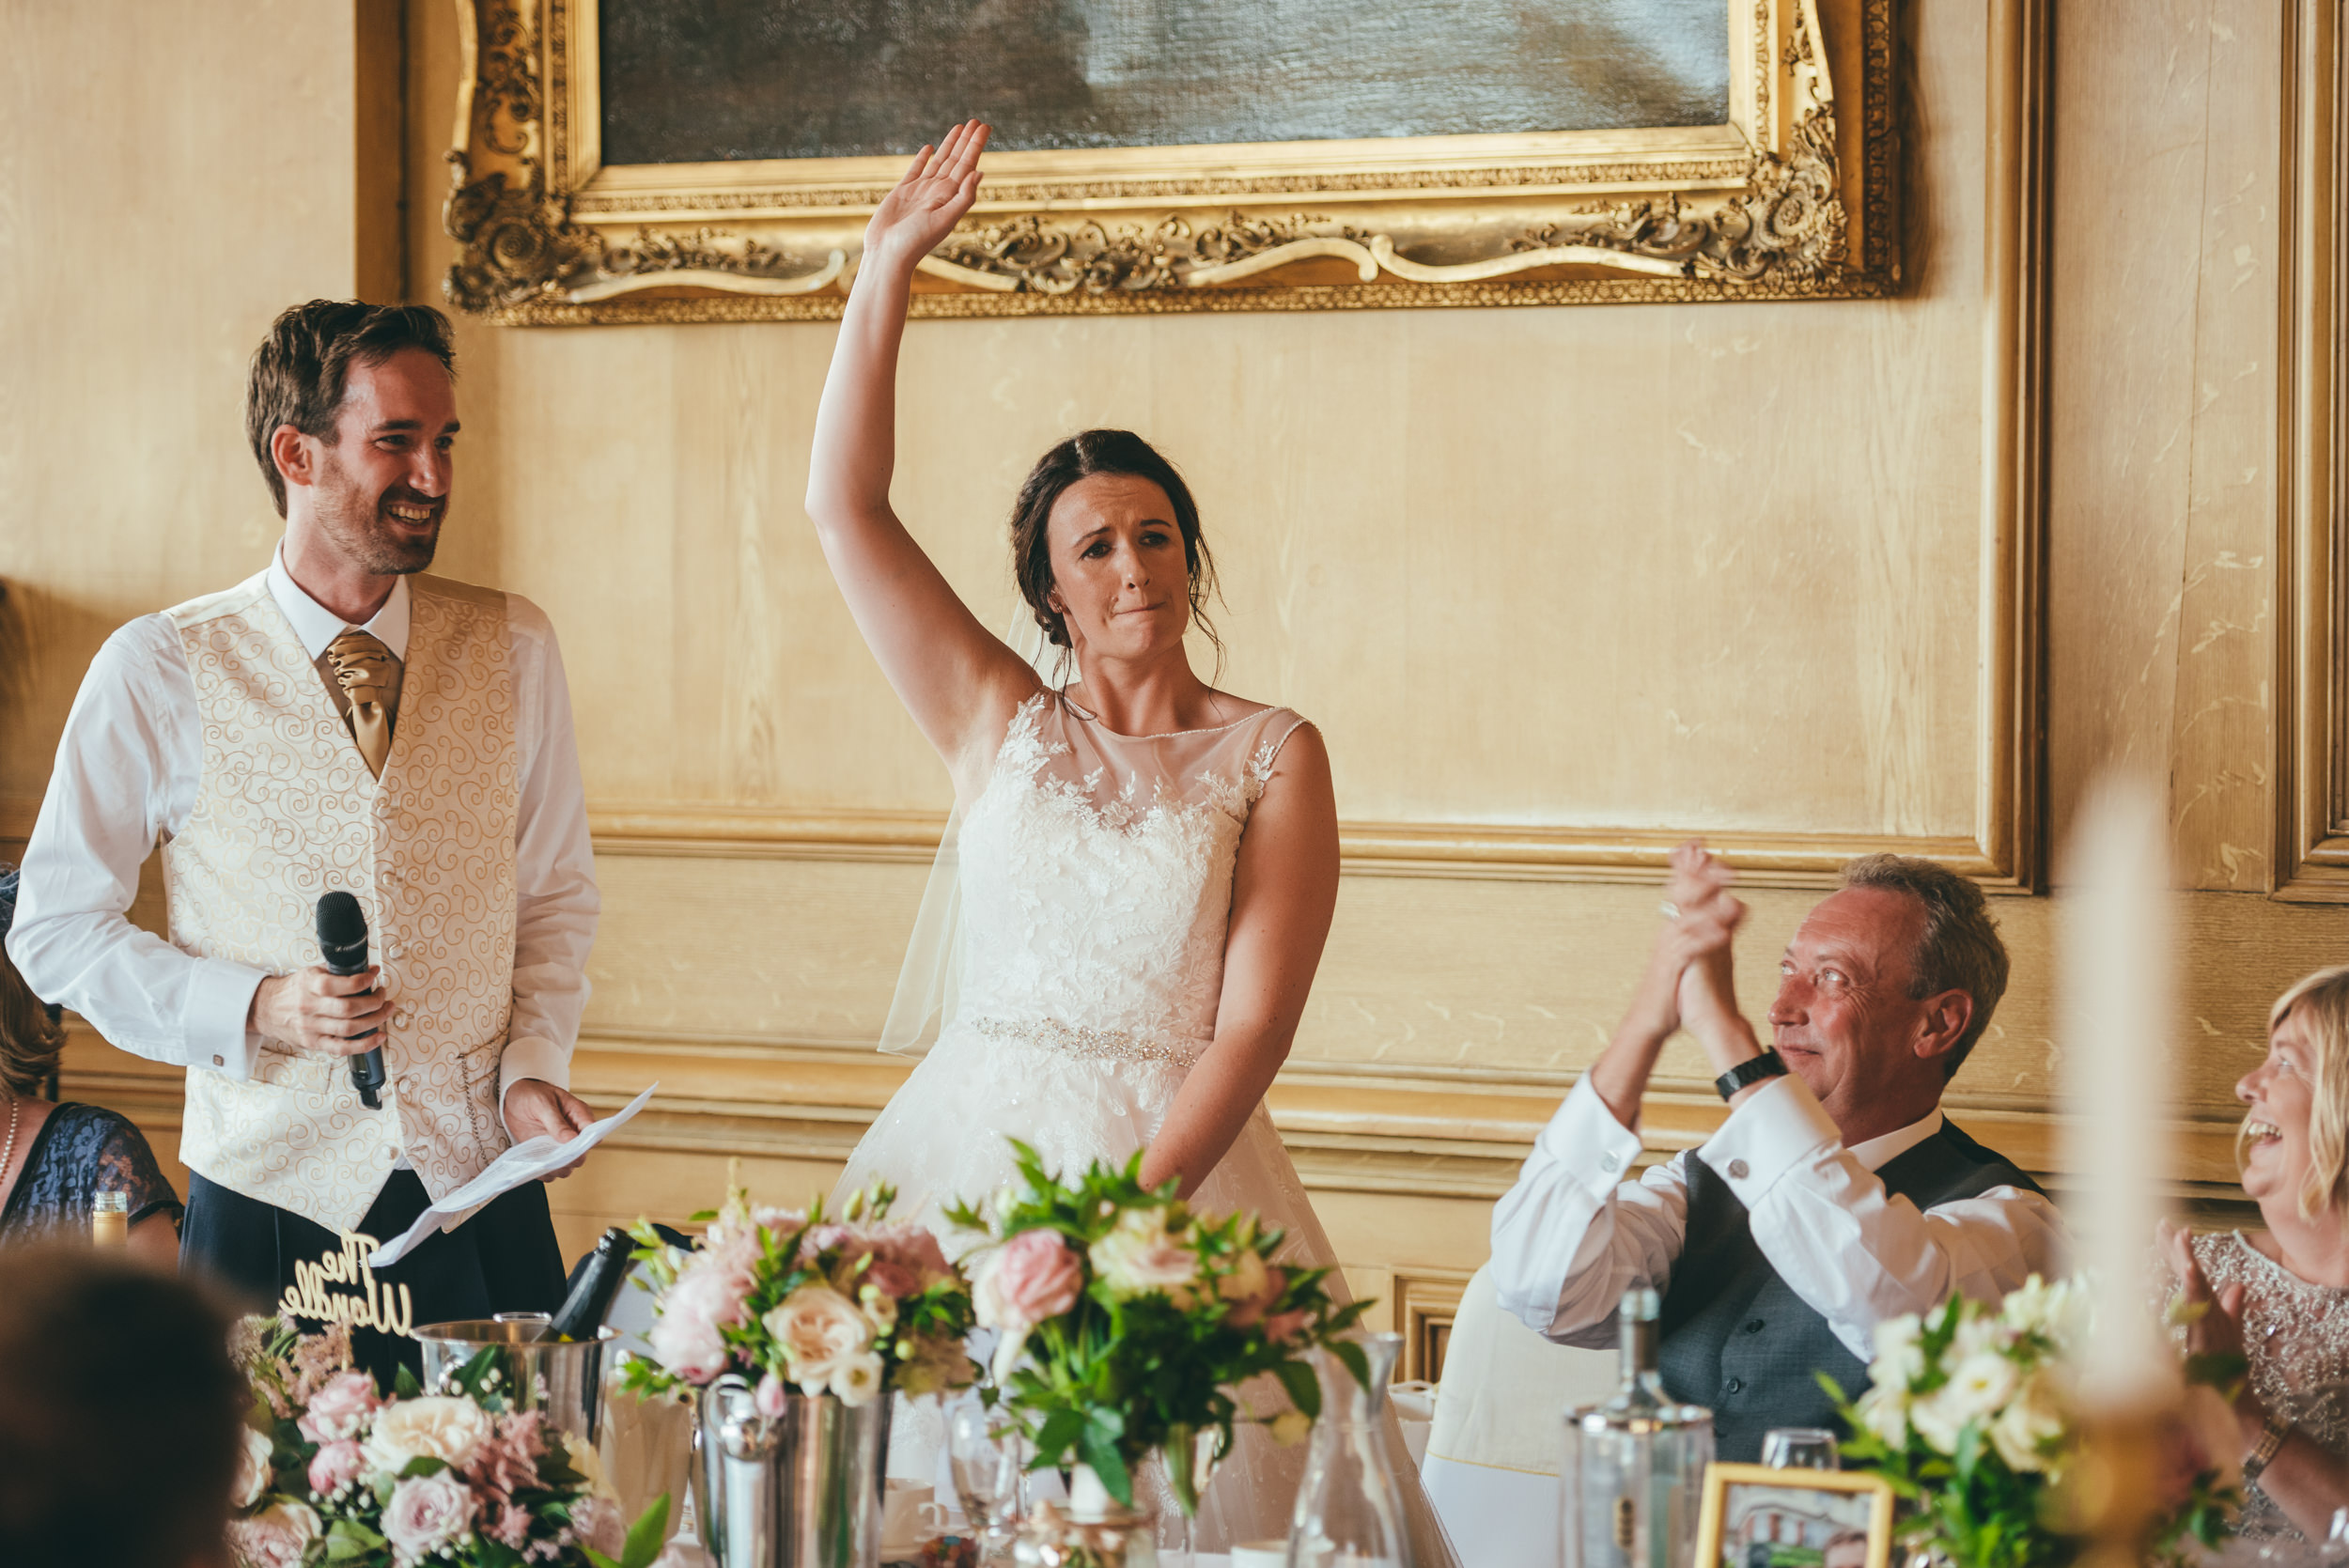 Bride and grrom making a speech on their wedding day at Harlaxton Manor